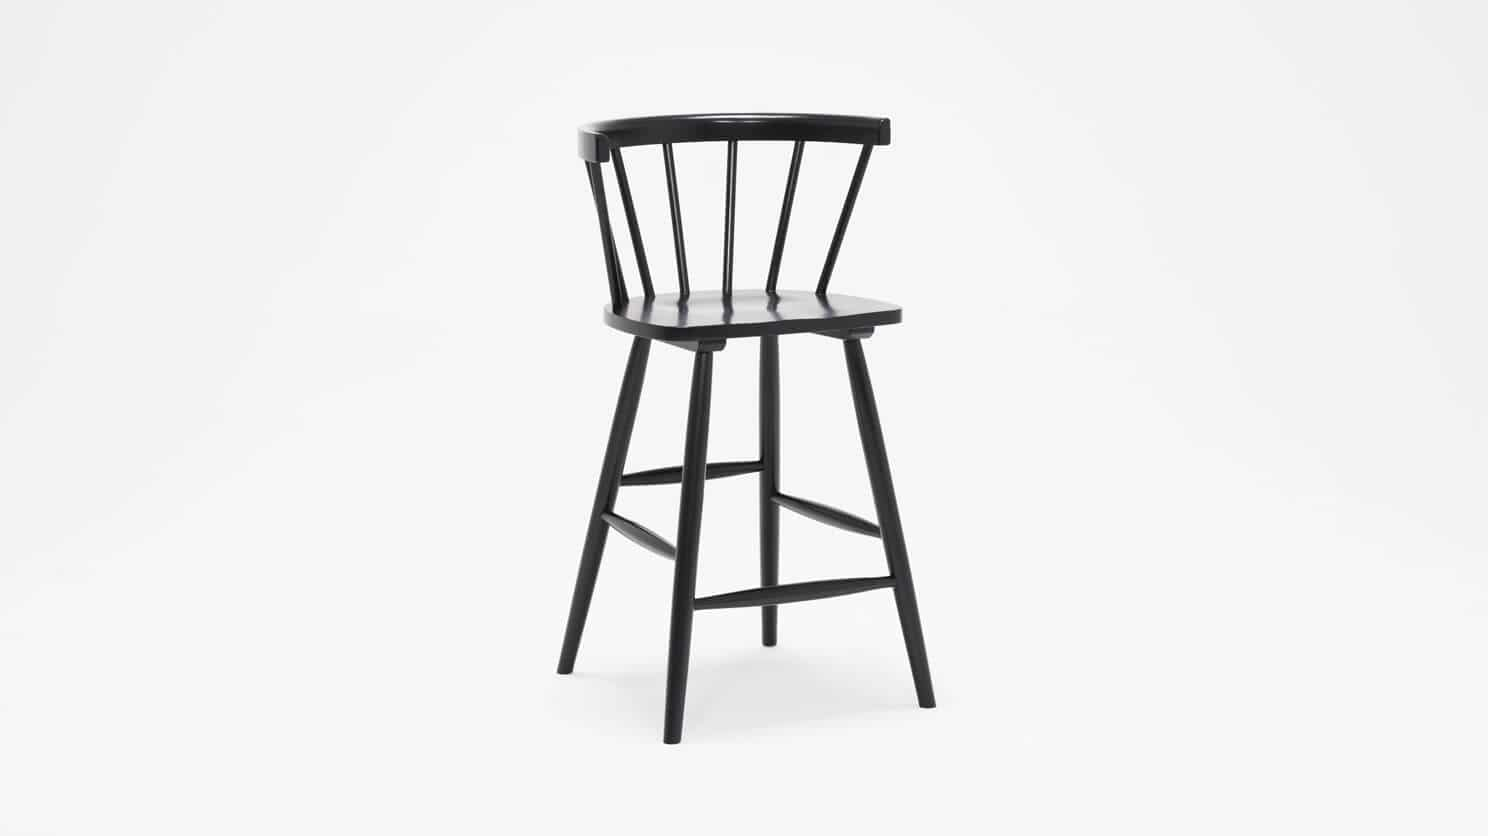 3020 271 par 2 stools lyla arm chair counter black corner 01